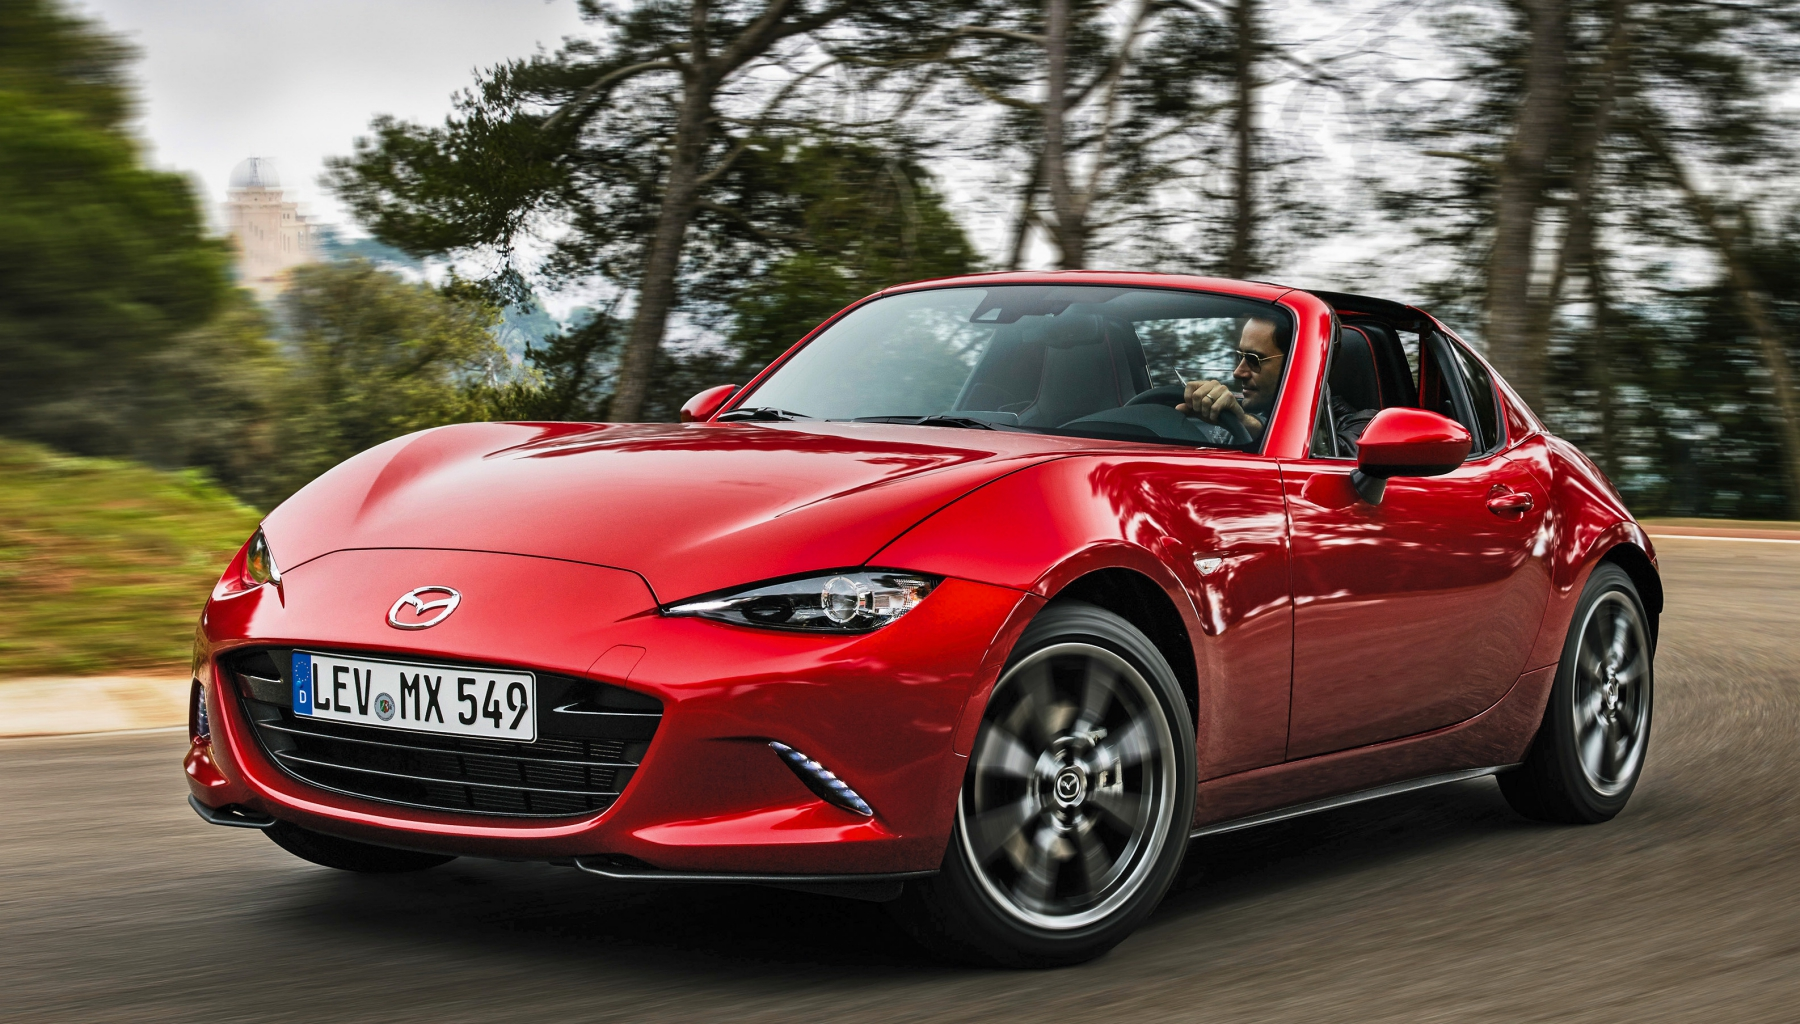 2017 Mazda MX 5 RF Red Test Drive Front View (Photo 14 of 20)